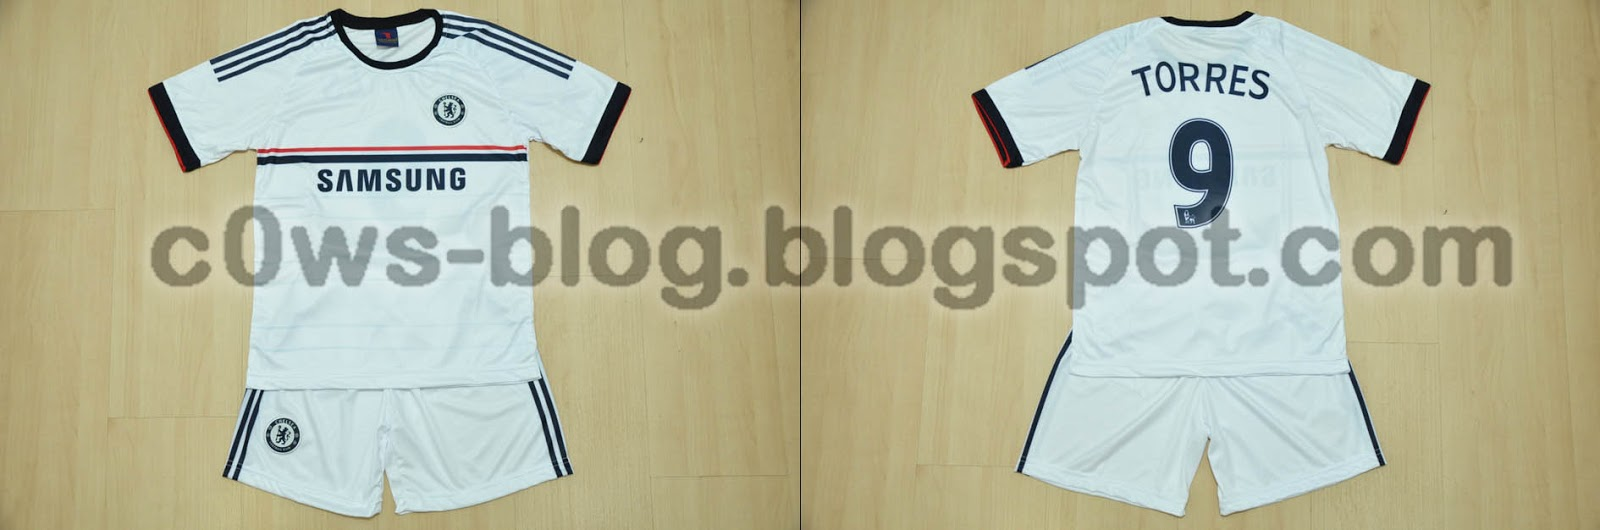 0d74c01ca86 available   Torres ( 9)   Oscar ( 11)   Hazard ( 17) · - Multisport Kid set  Jersey   Manchester United Away 2013 2014 LEAKED! -